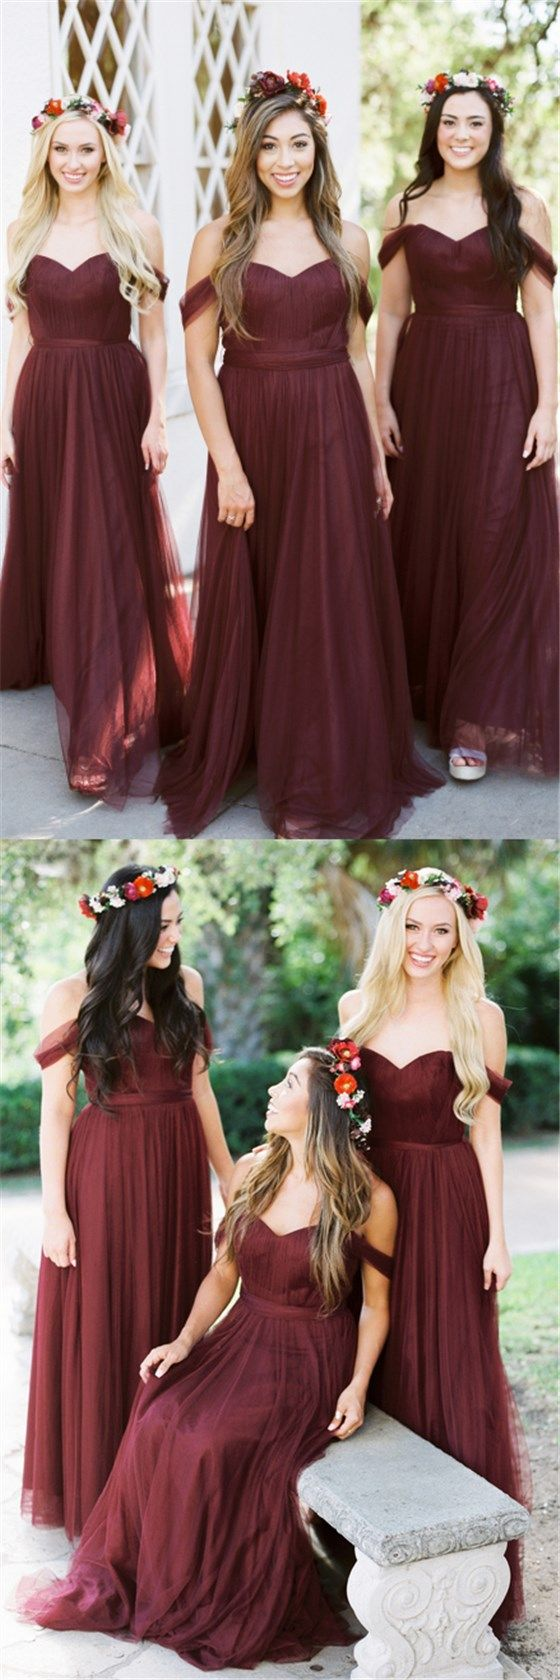 Best 25 country bridesmaid dresses ideas on pinterest country best 25 country bridesmaid dresses ideas on pinterest country wedding bridesmaid dresses country wedding dresses and dresses for wedding reception ombrellifo Gallery